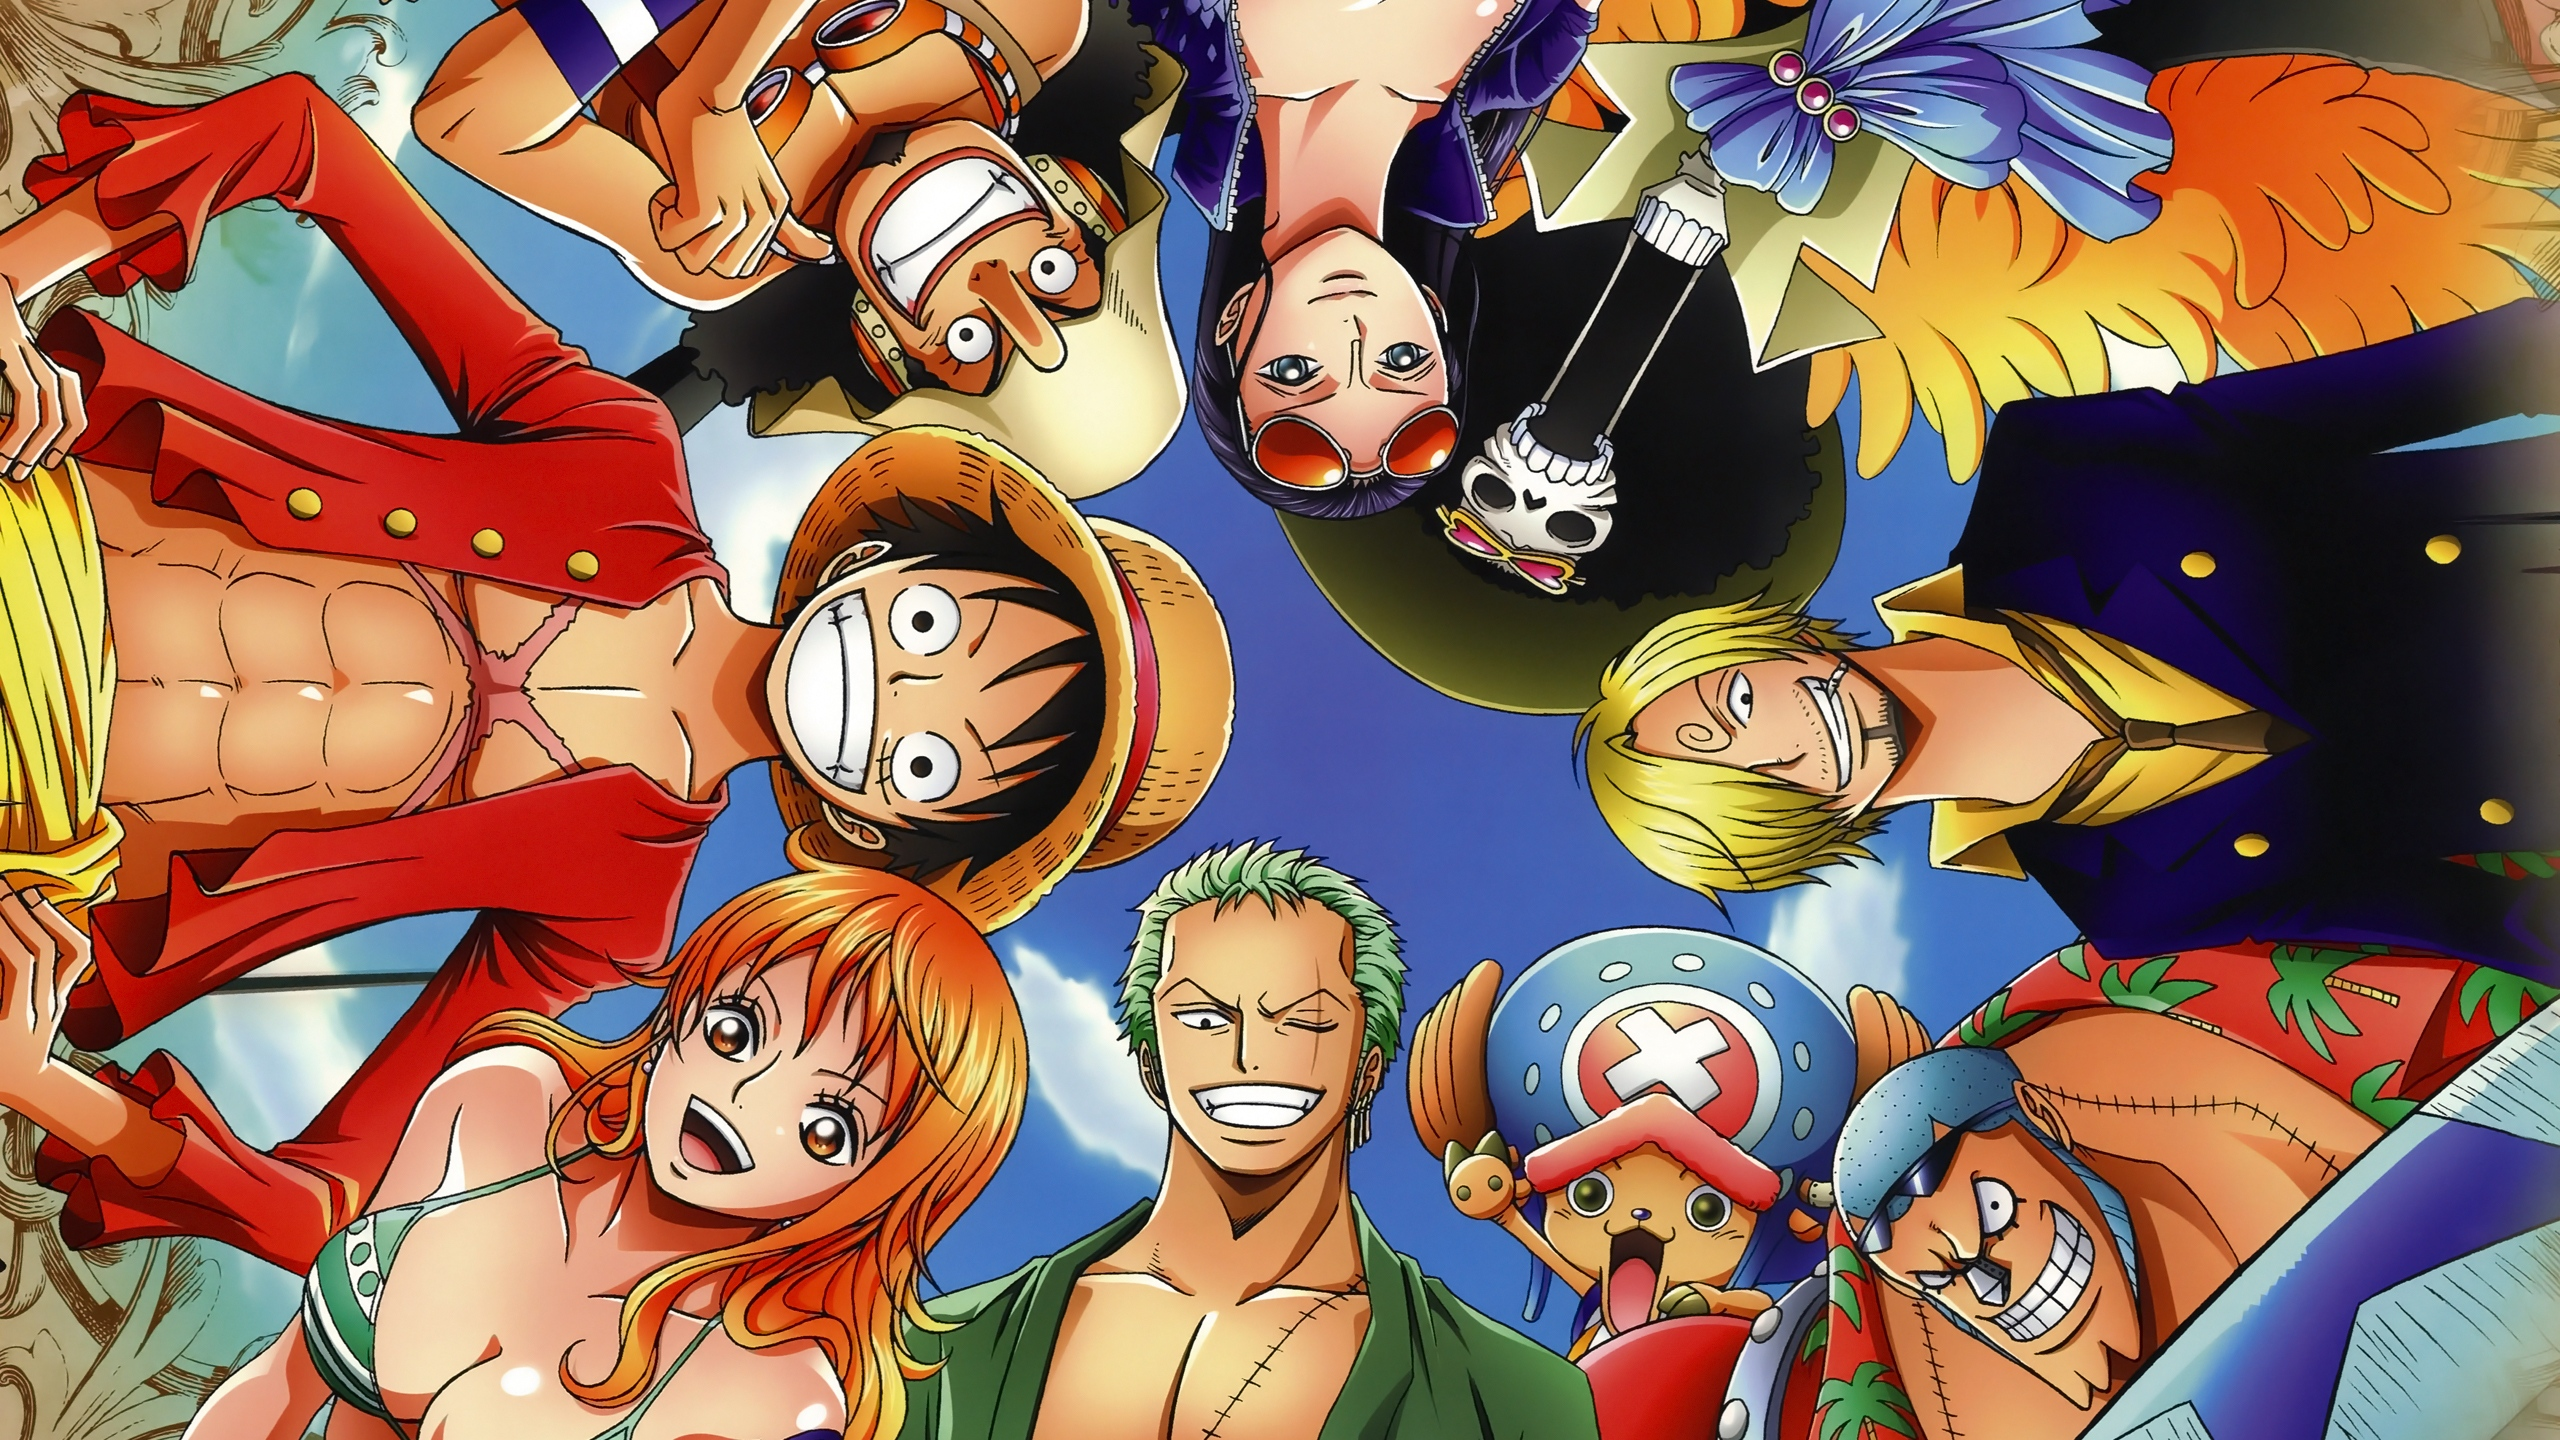 Anime Wallpaper Characters from One Piece